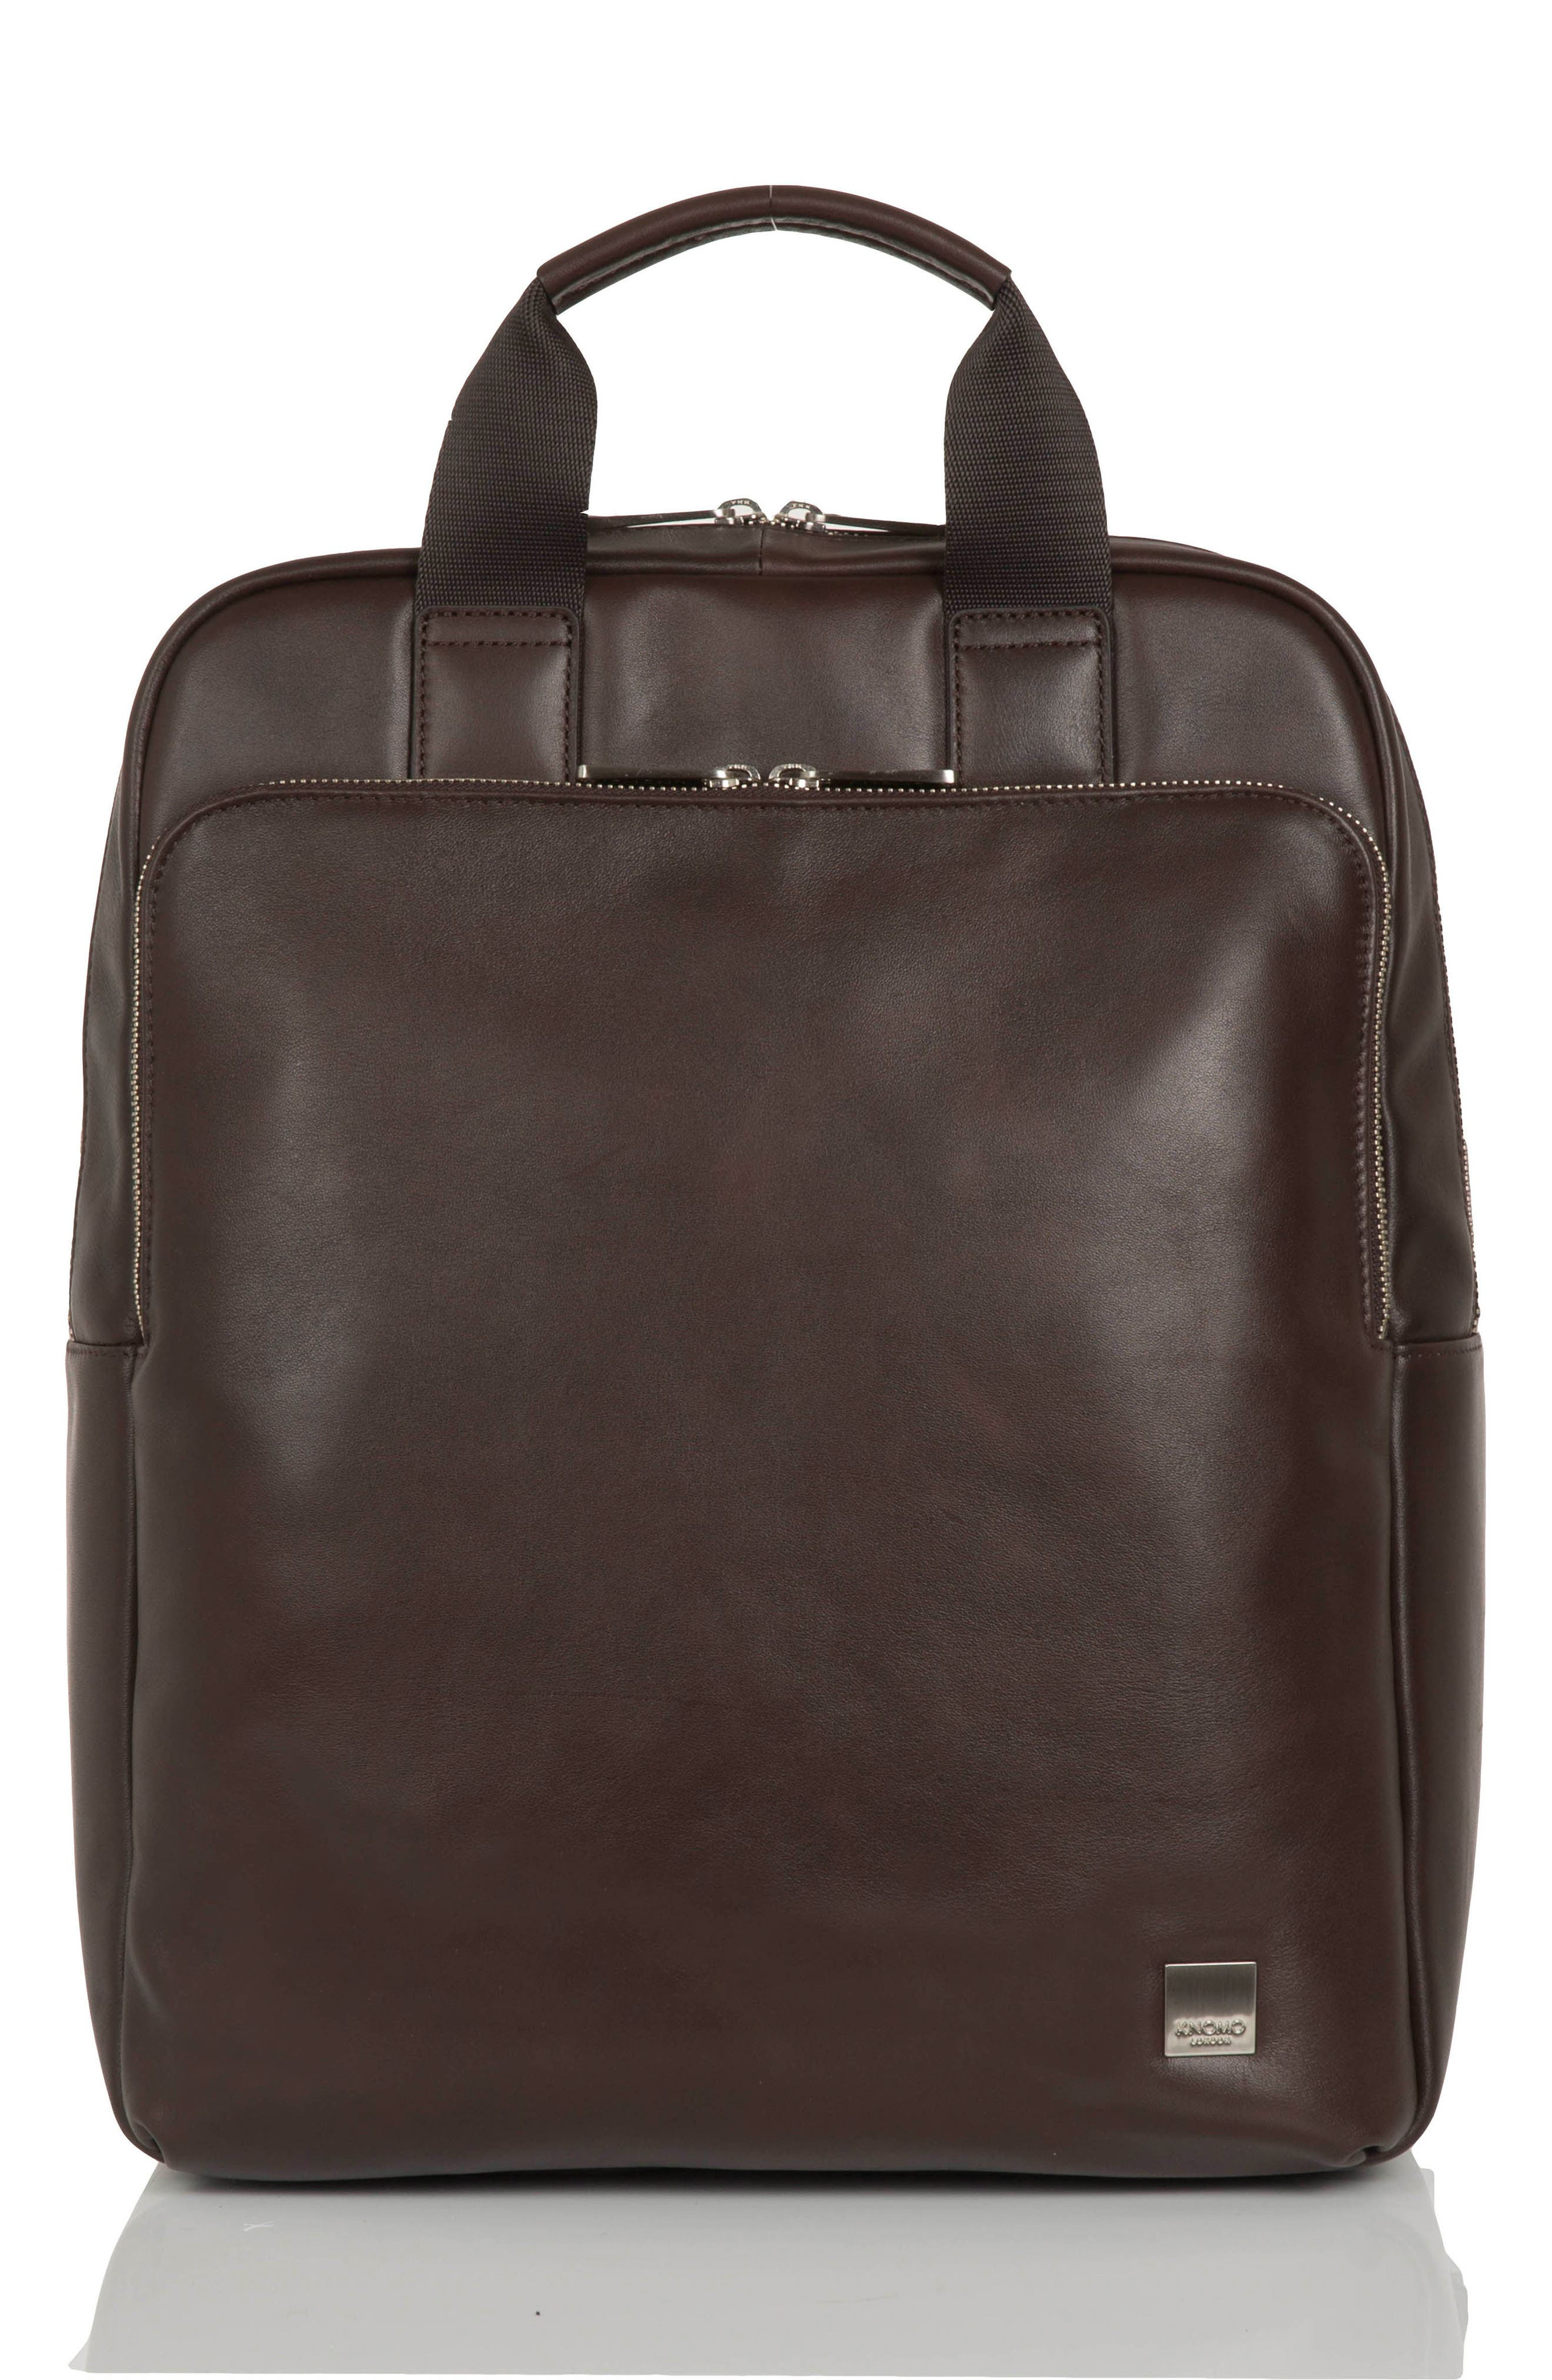 KNOMO London Brompton Dale Leather Totepack